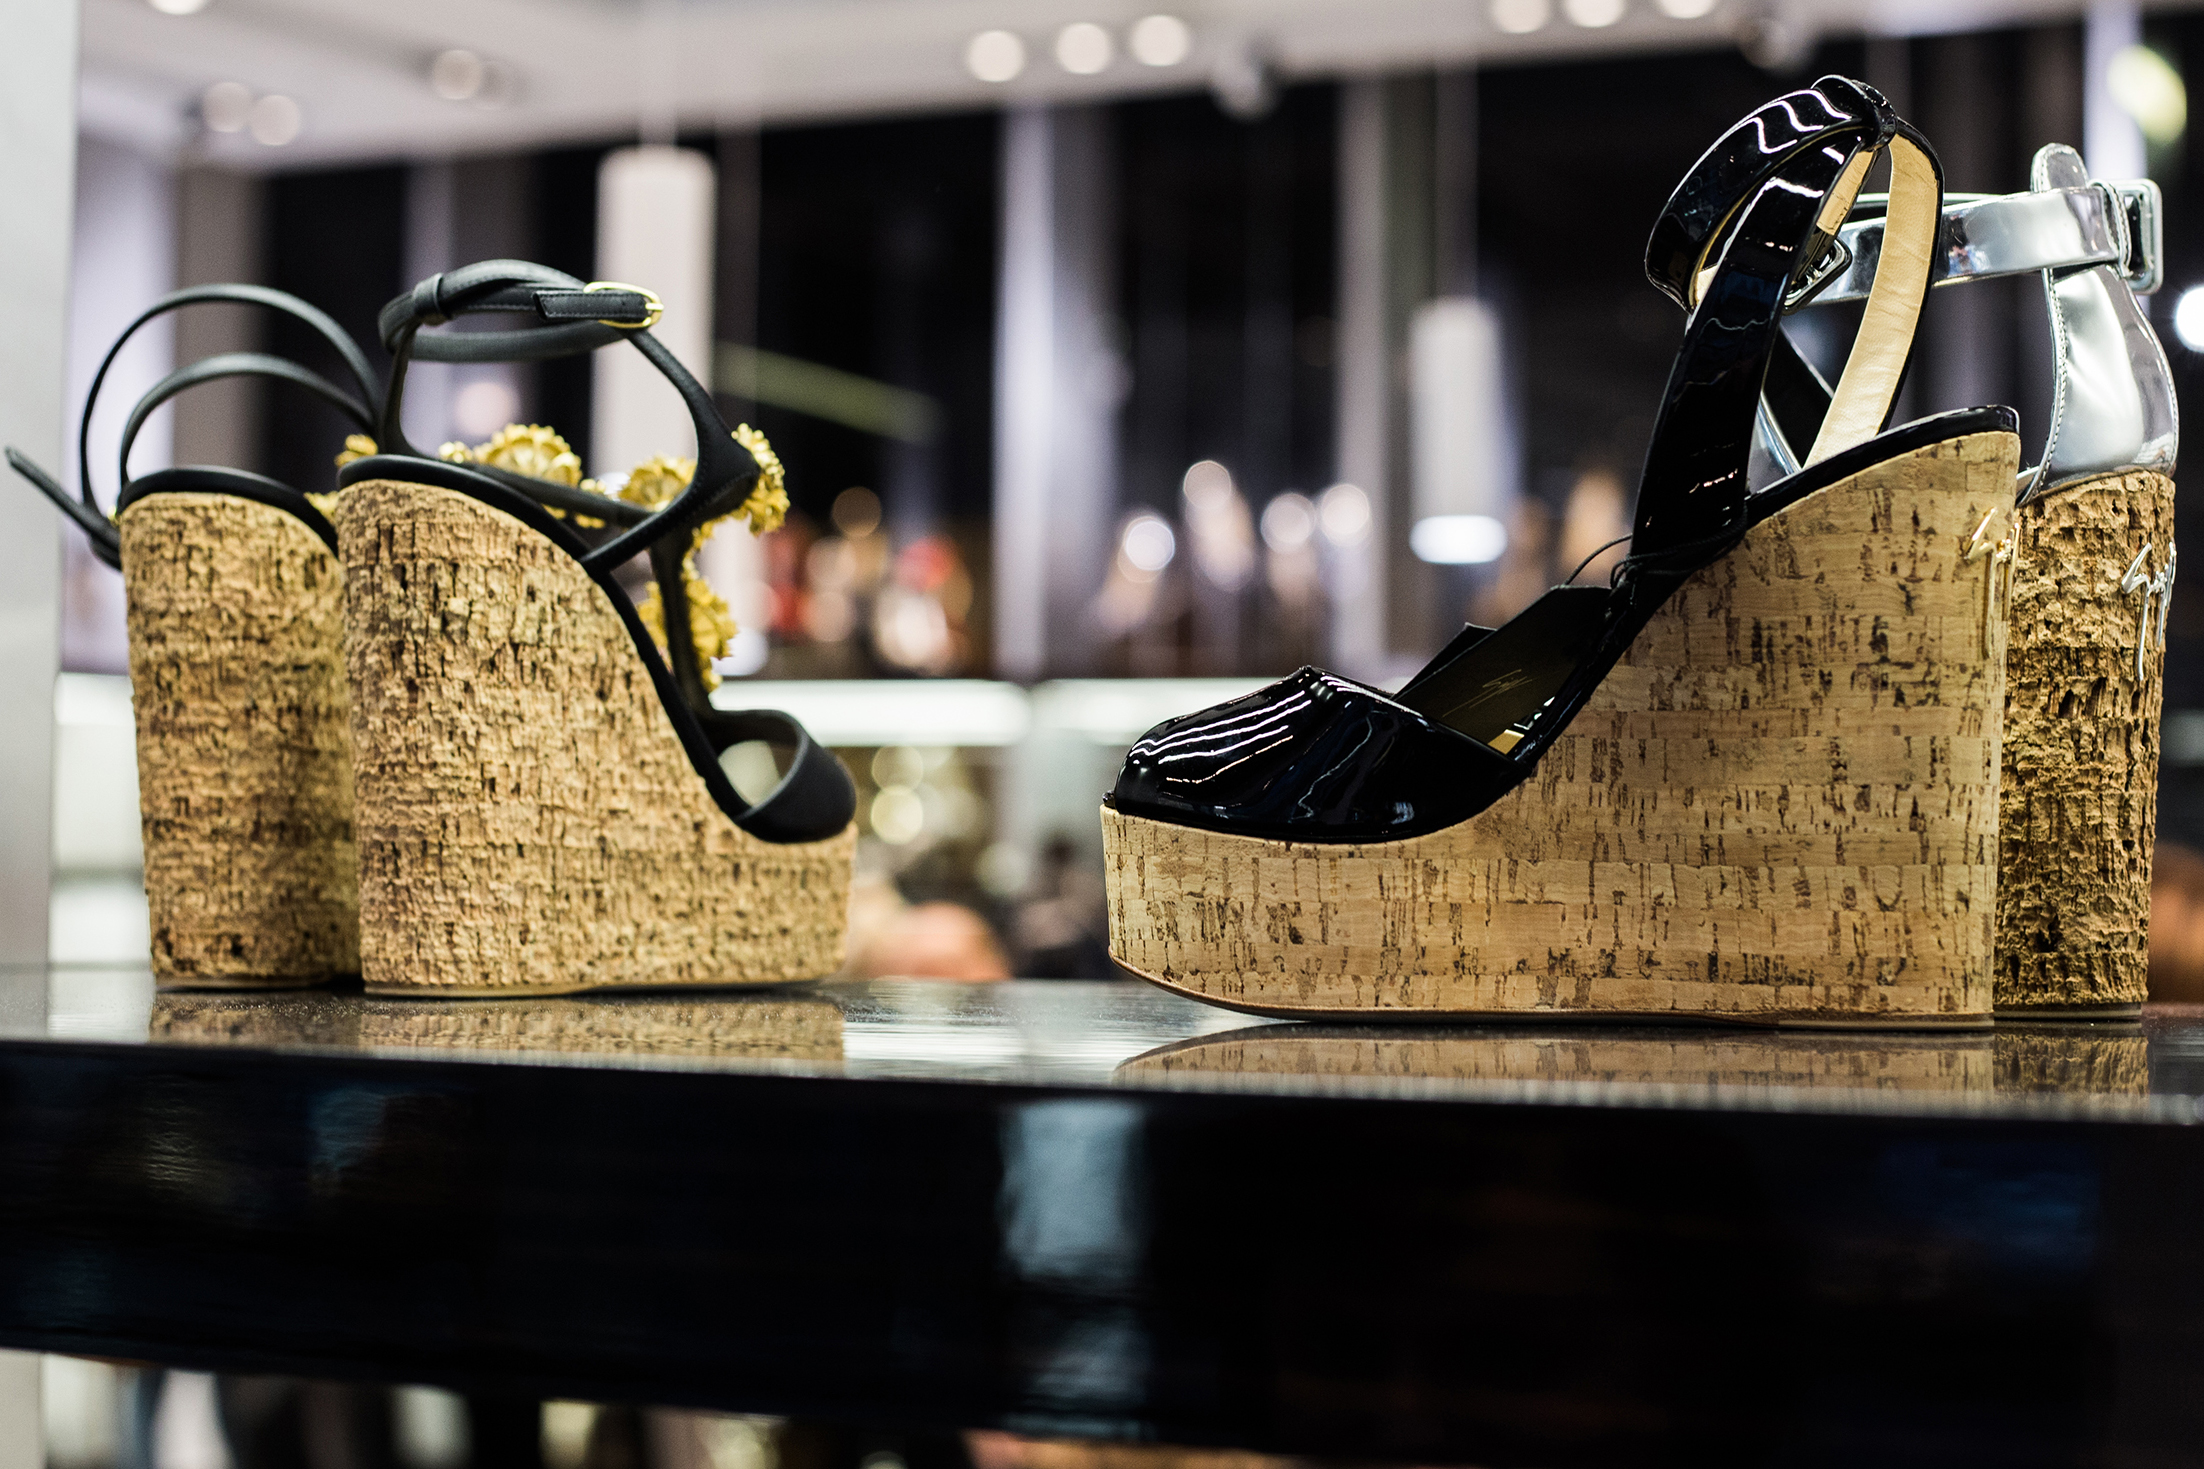 Poland's biggest luxury footwear boutique 'Vitkac shoes' opening event report.